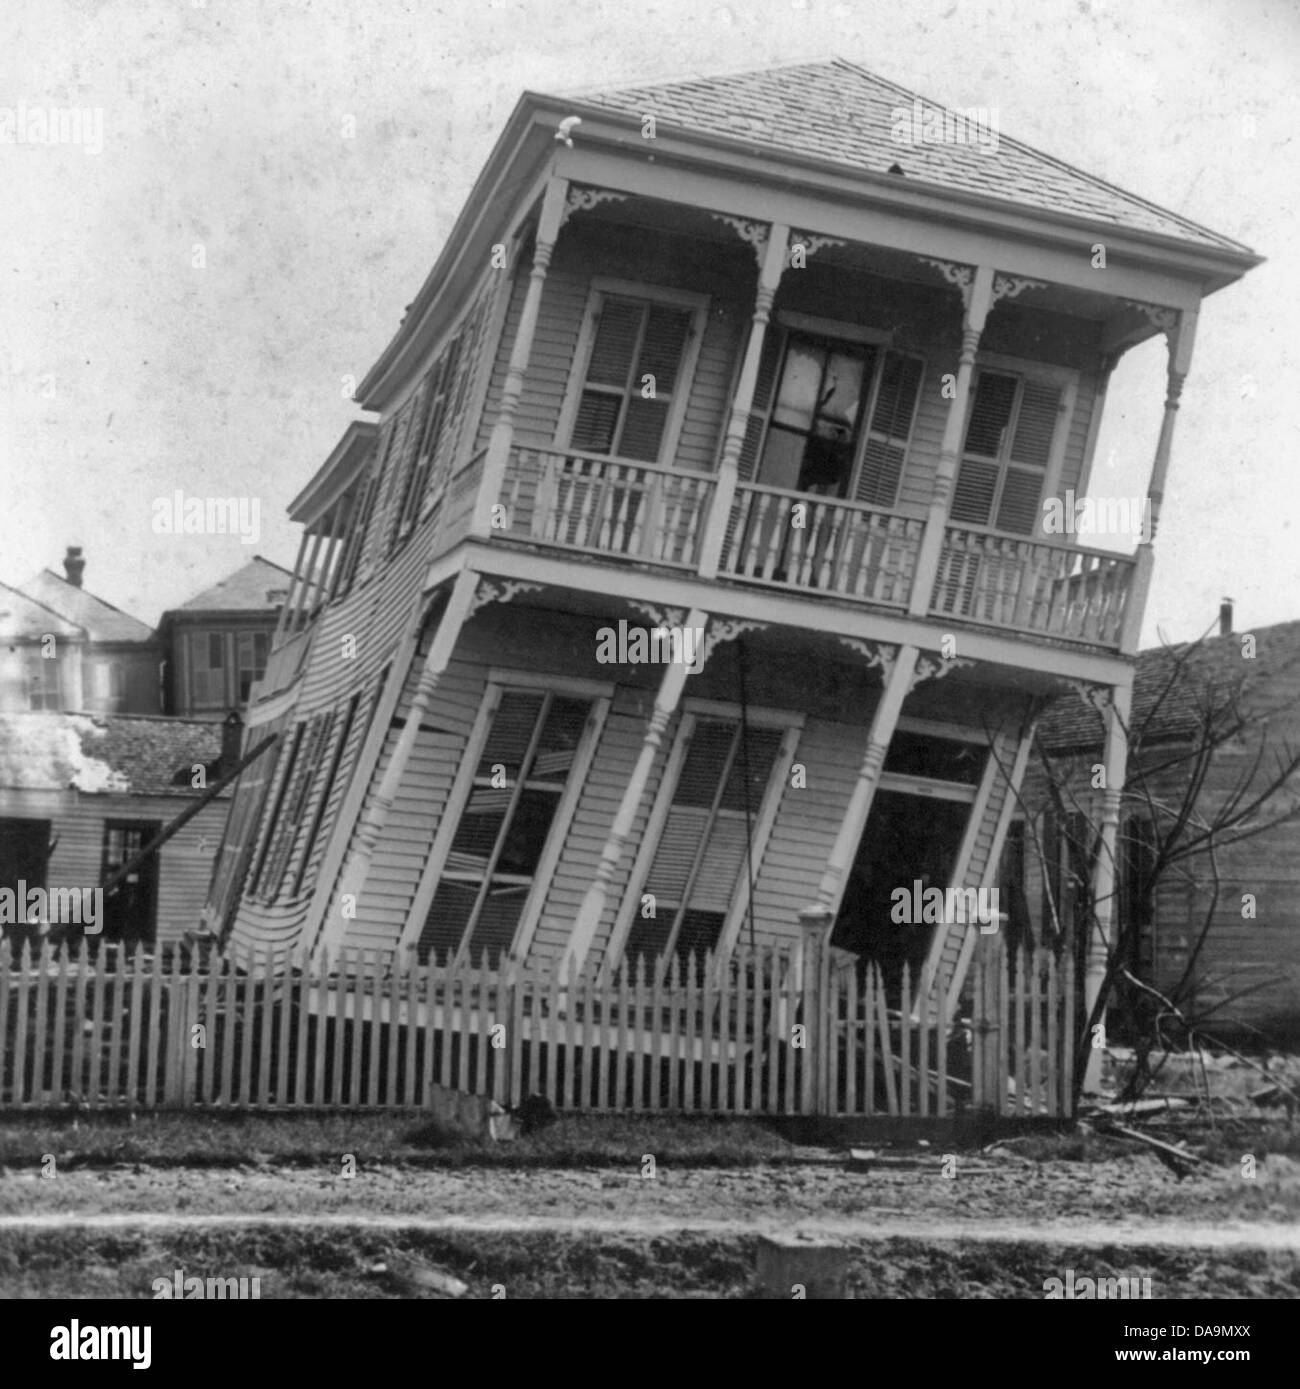 Galveston Disaster, Texas: a slightly twisted house, October, 1900 - Stock Image